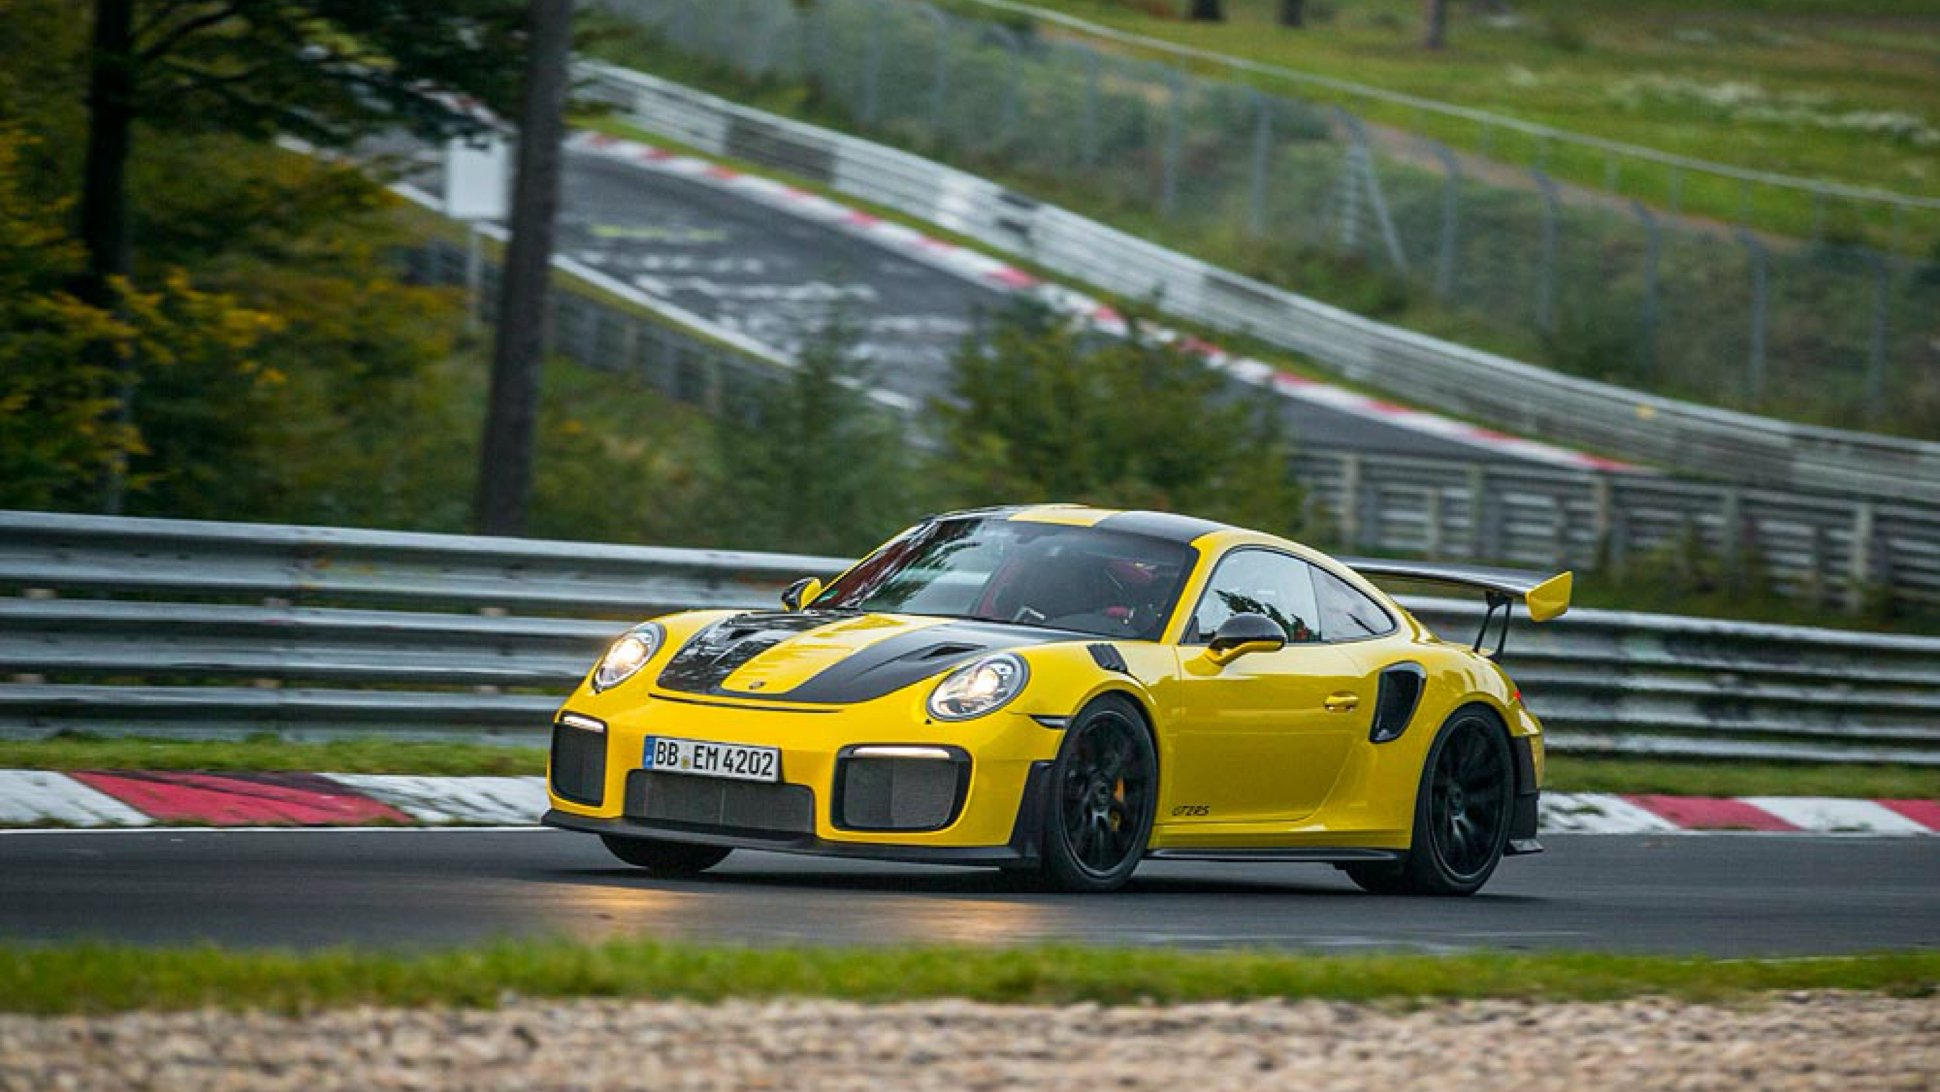 Porsche topples Lamborghini to set a new speed record at Nurburgring with the 911 GT2 RS